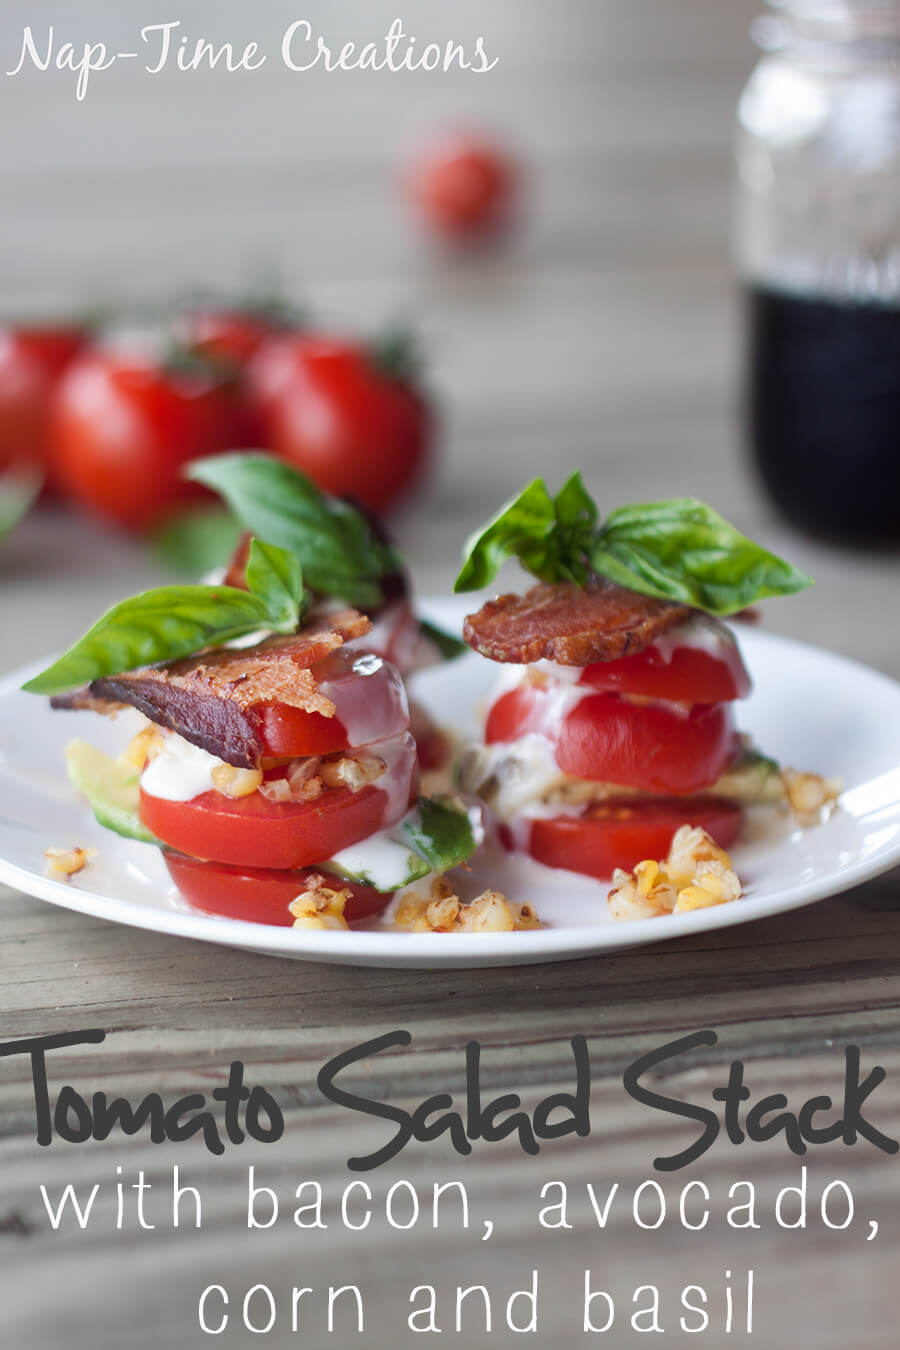 tomato salad stack with bacon, avocado, corn and basil from Nap-Time ...